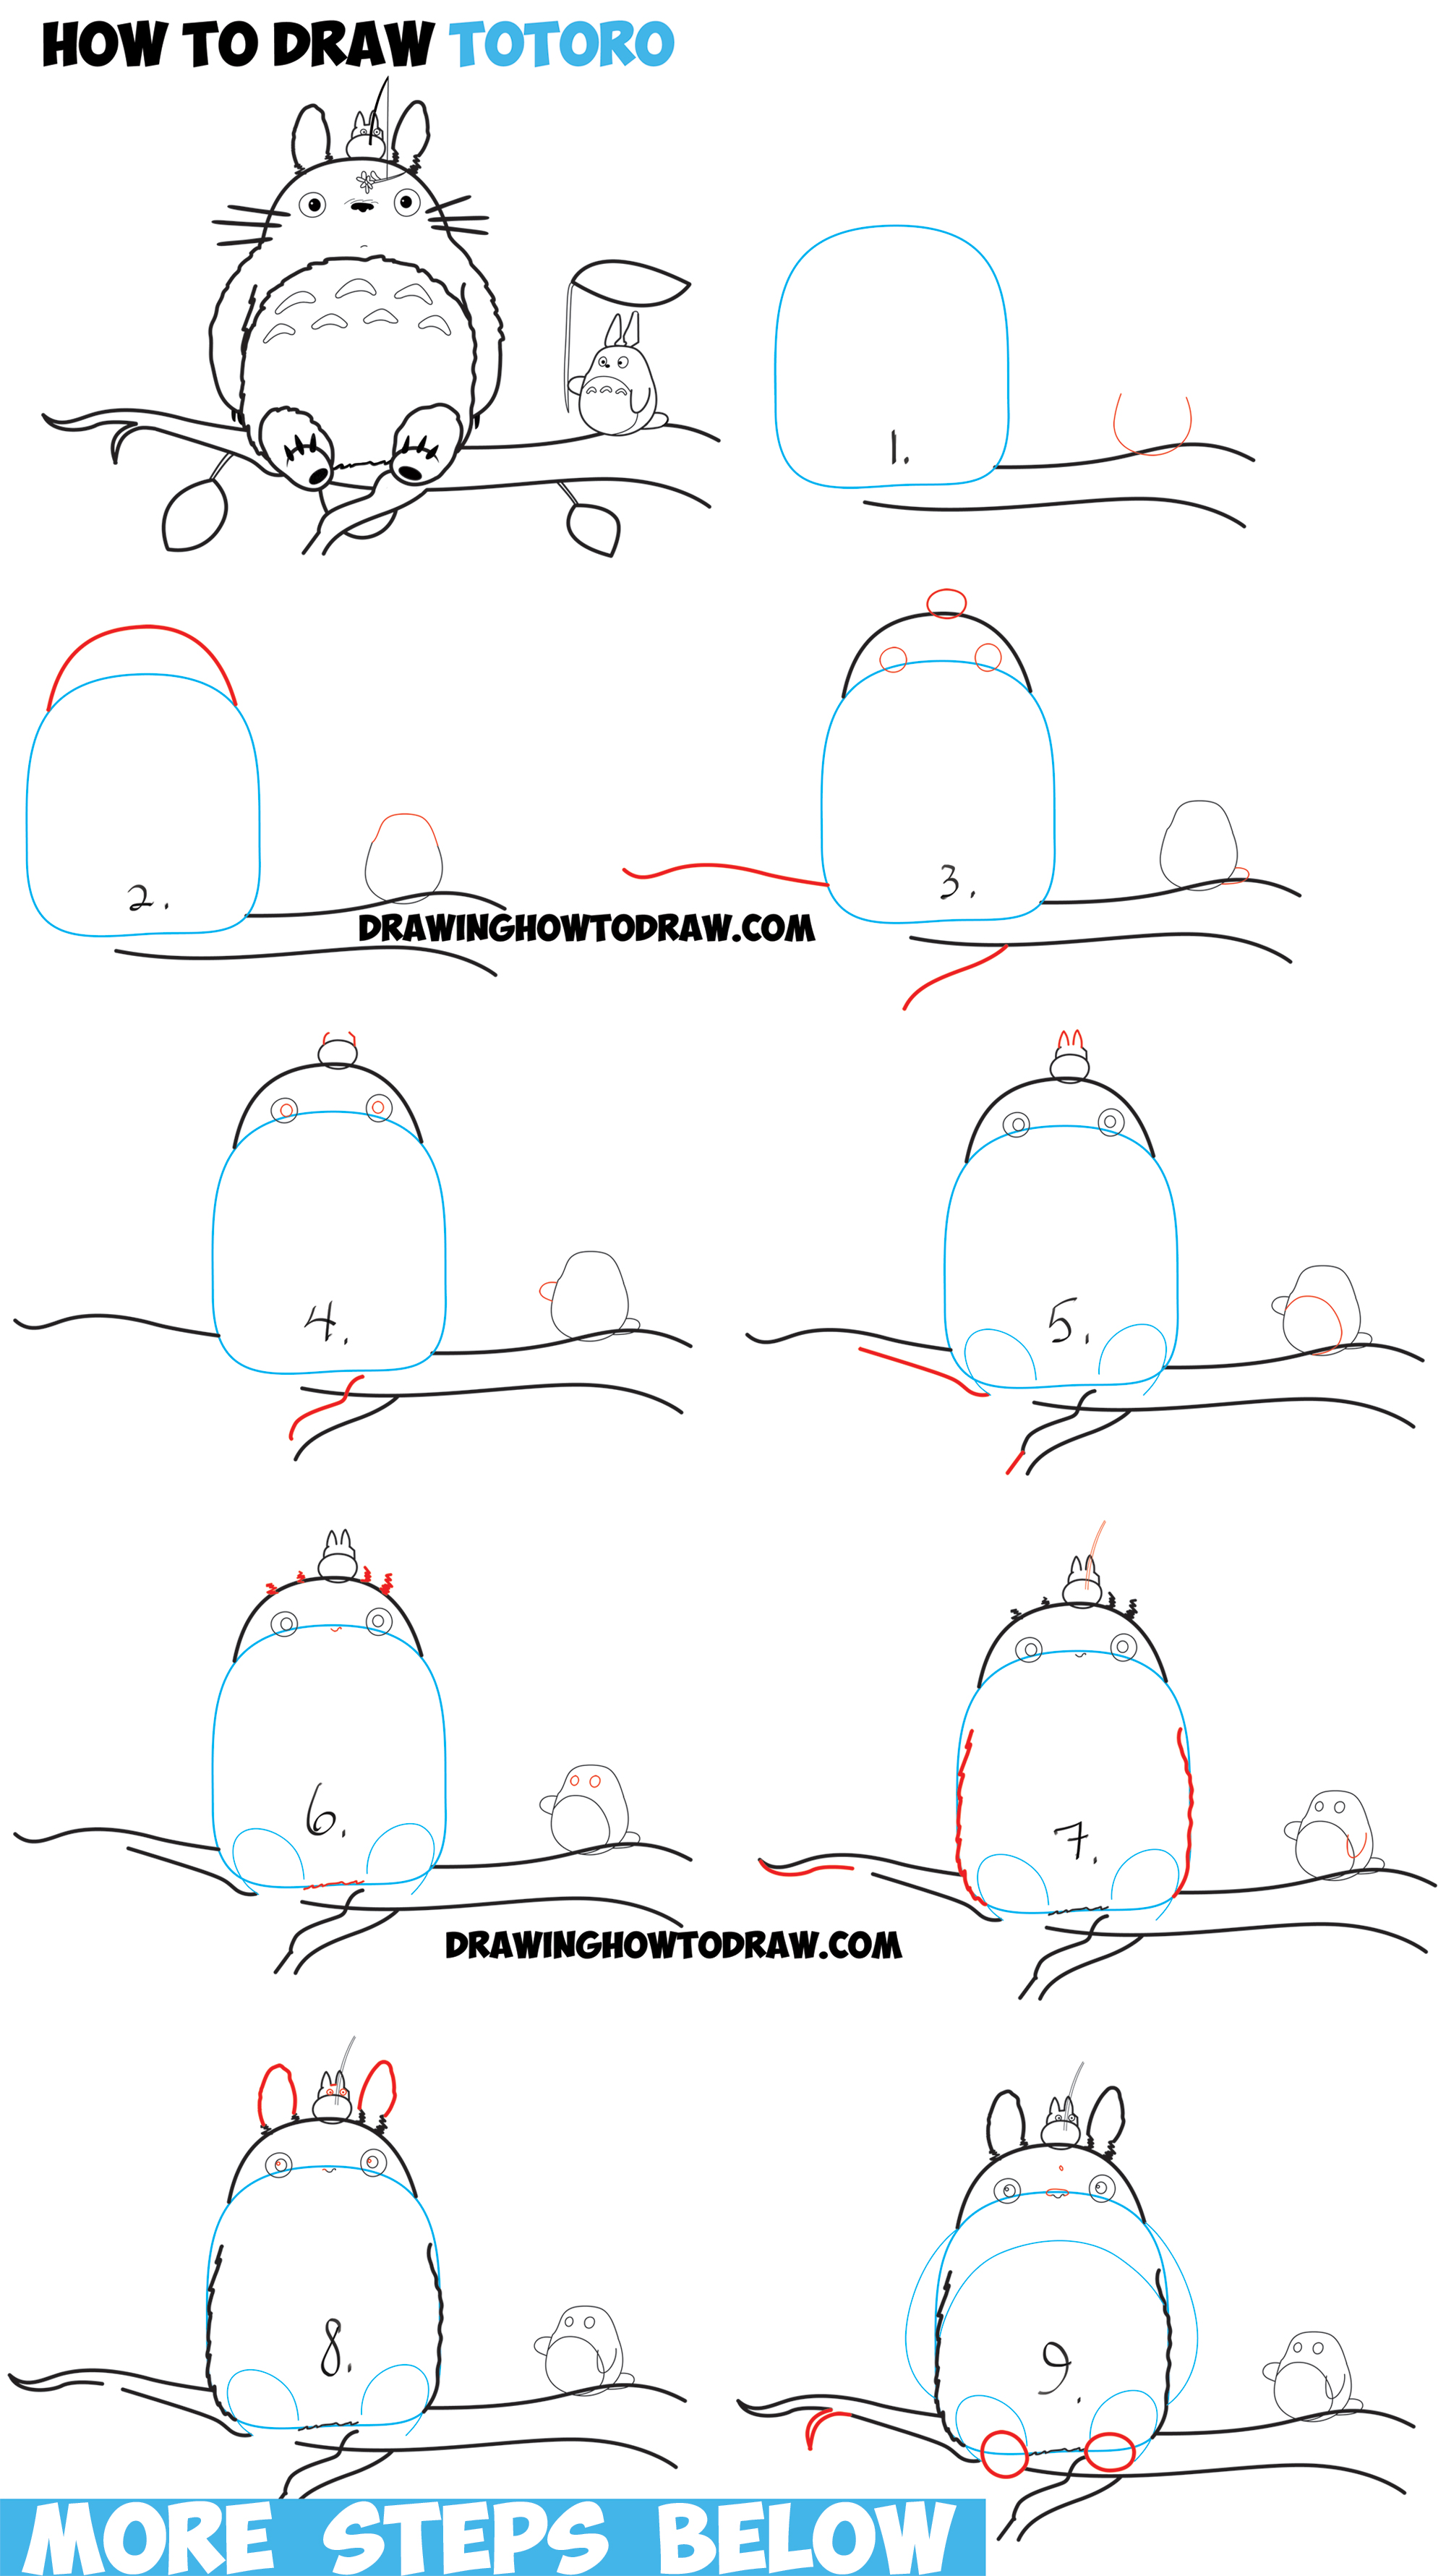 How to Draw Totoro with Small and Medium Totoro - Easy Step by Step Drawing Tutorial